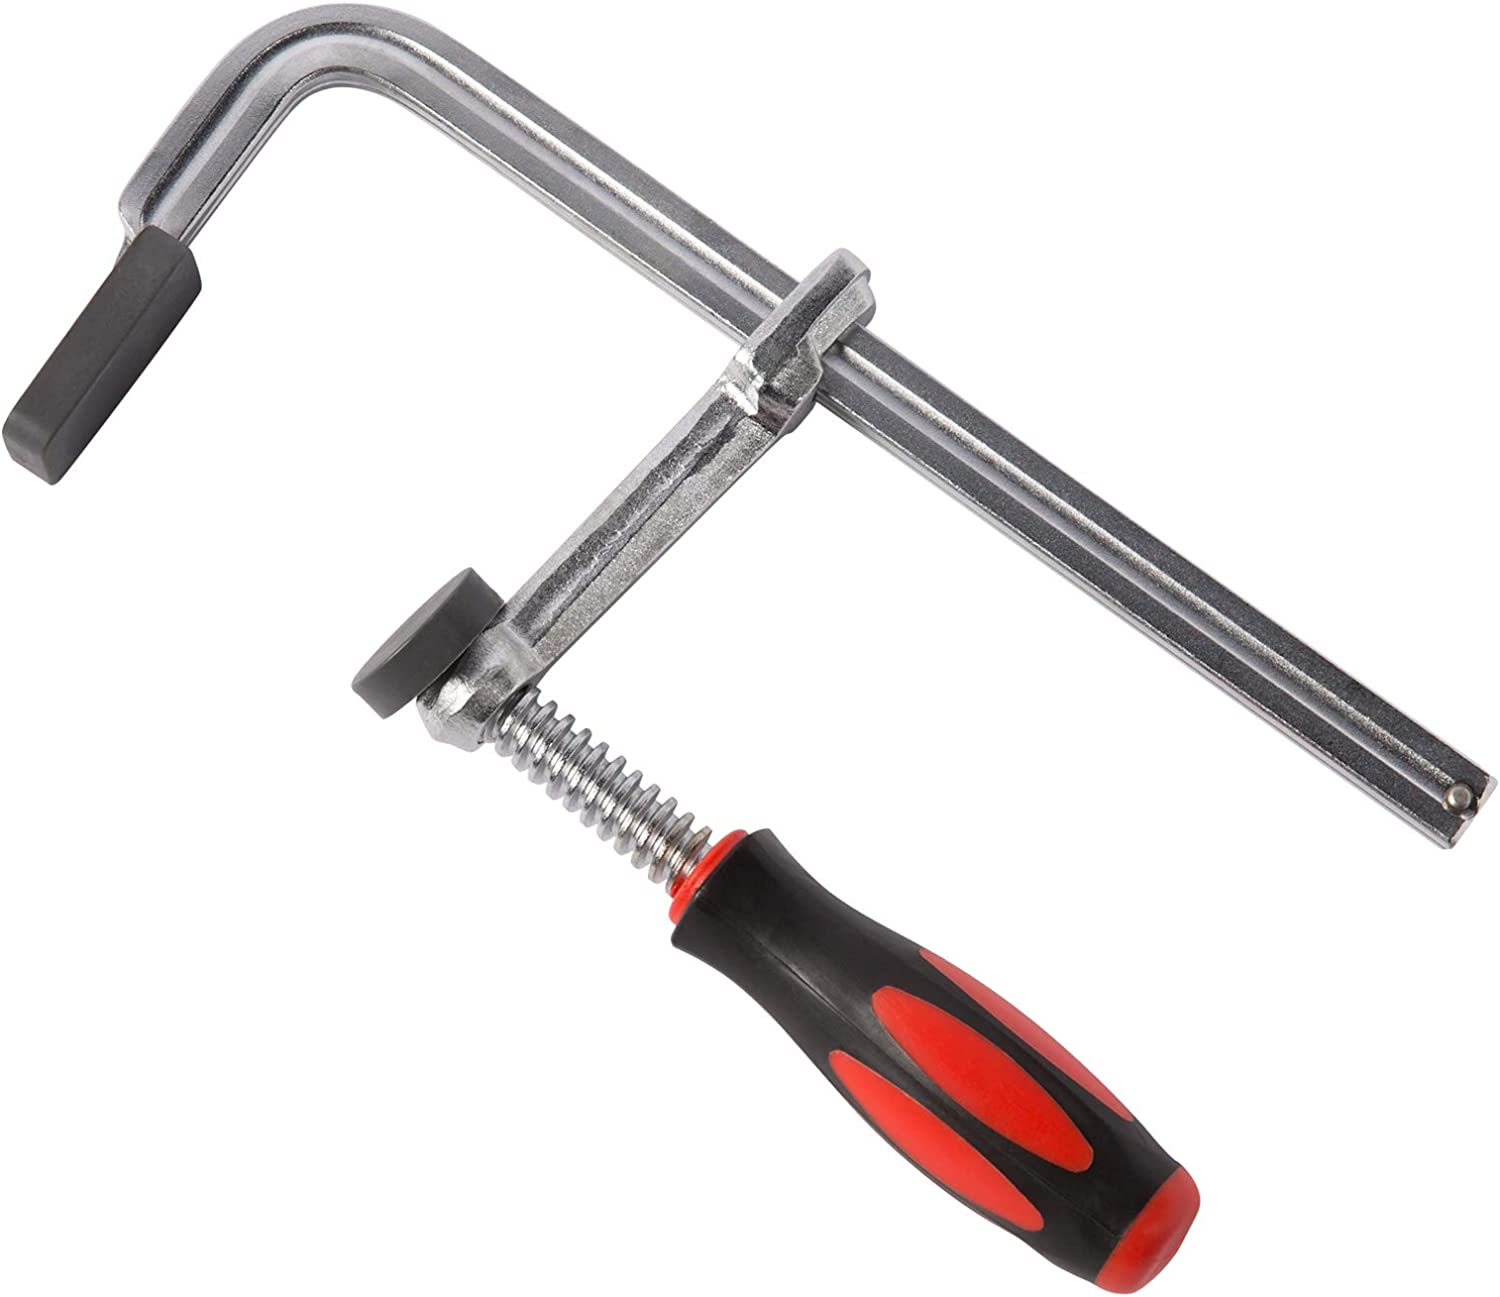 MAXPOWER 8 F-Clamp Medium Duty Heat Treated Steel Bar Clamp with Ergonomic Grip Handle and Protective Pads